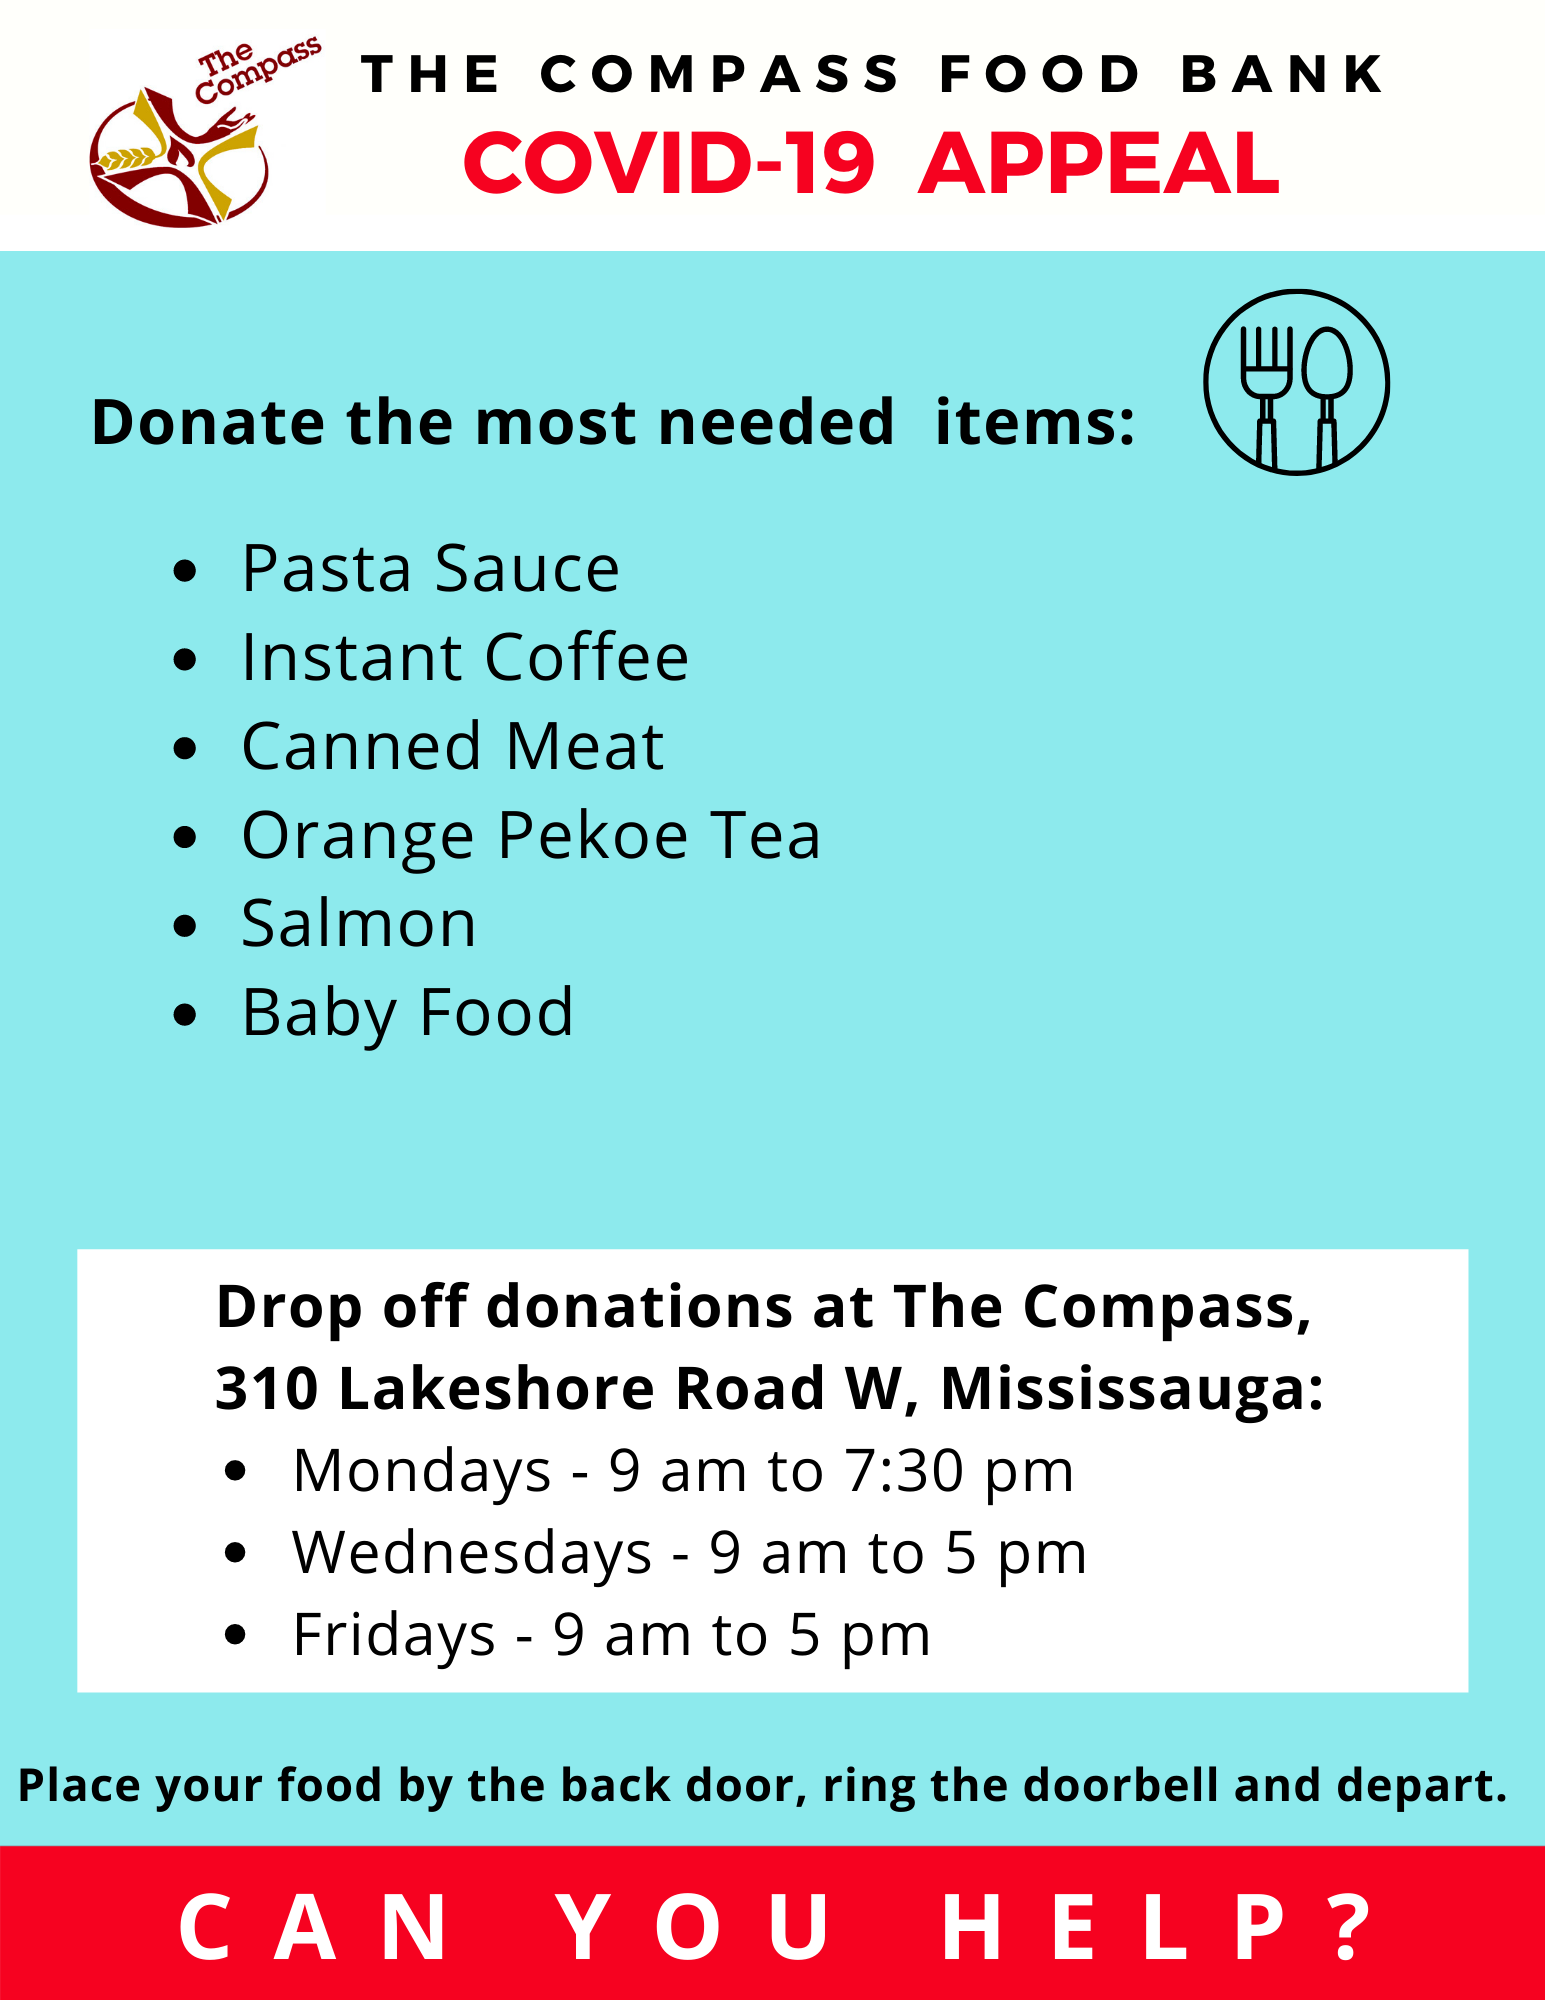 Most Needed Items for this week are Pasta Sauce, Instant Coffee, Canned Meat, Orange Pekoe Tea, Salmon, Baby Food